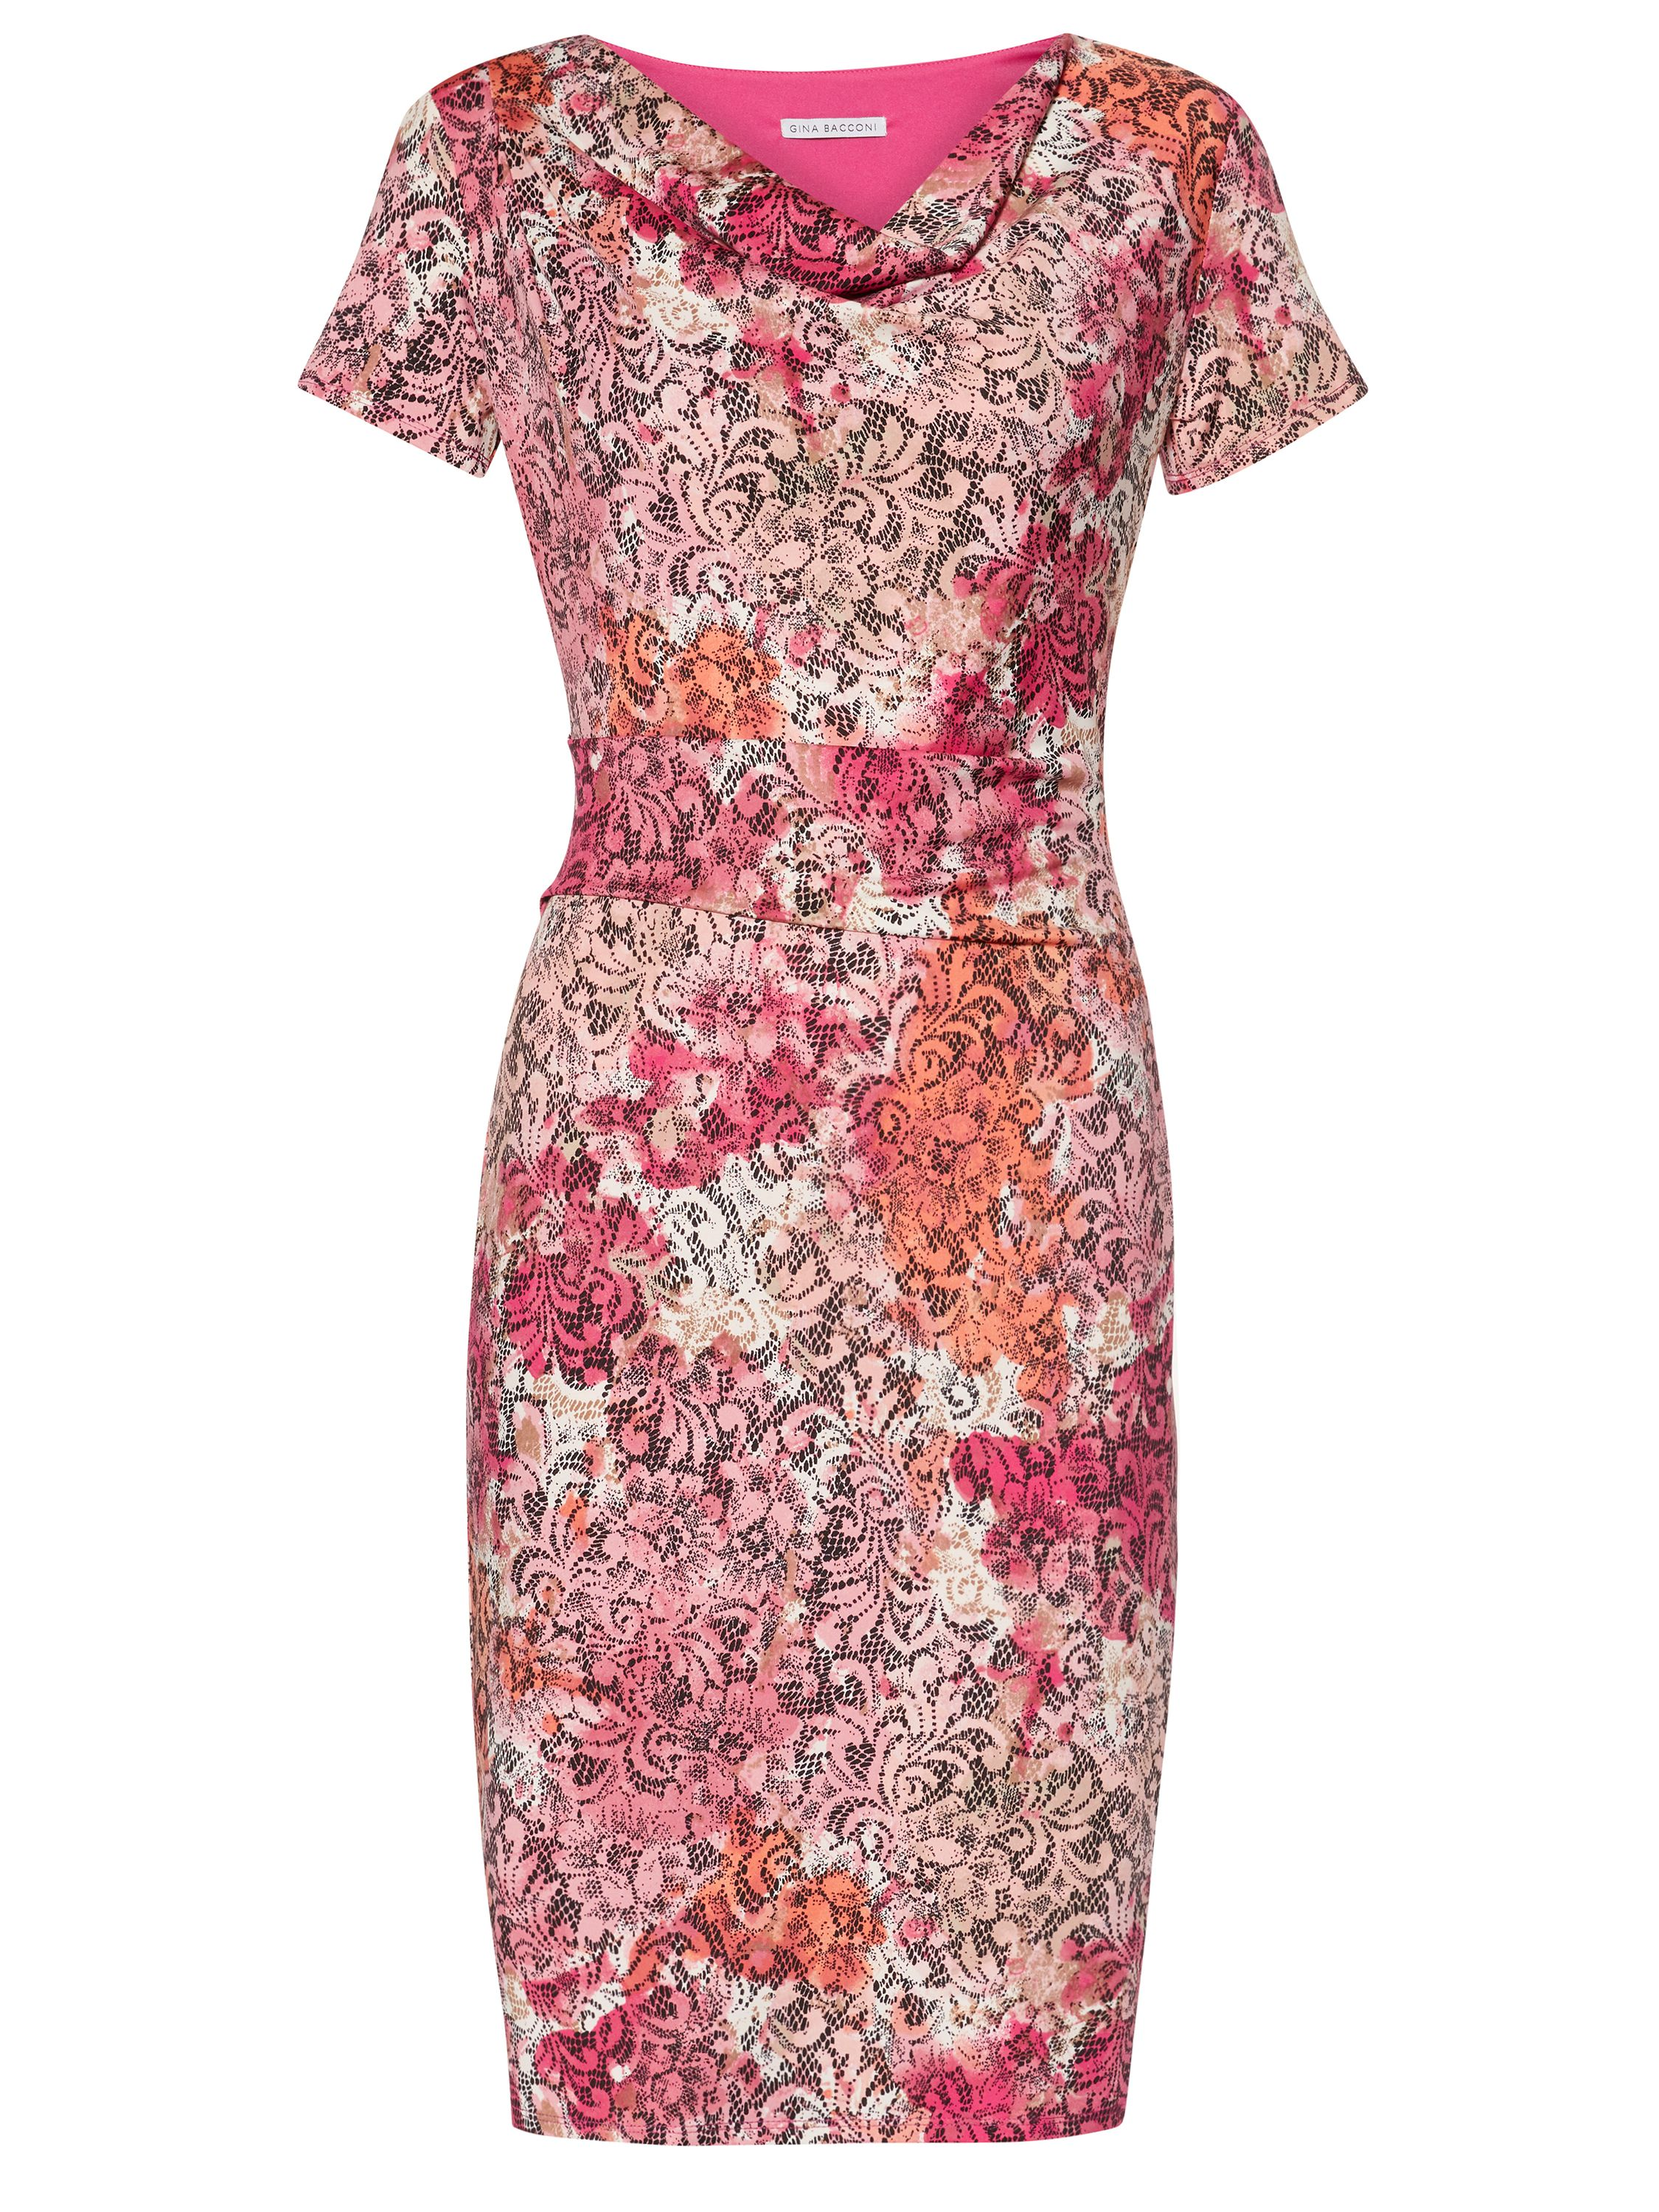 Gina Bacconi Pink Lace Effect Jersey Dress, Pink